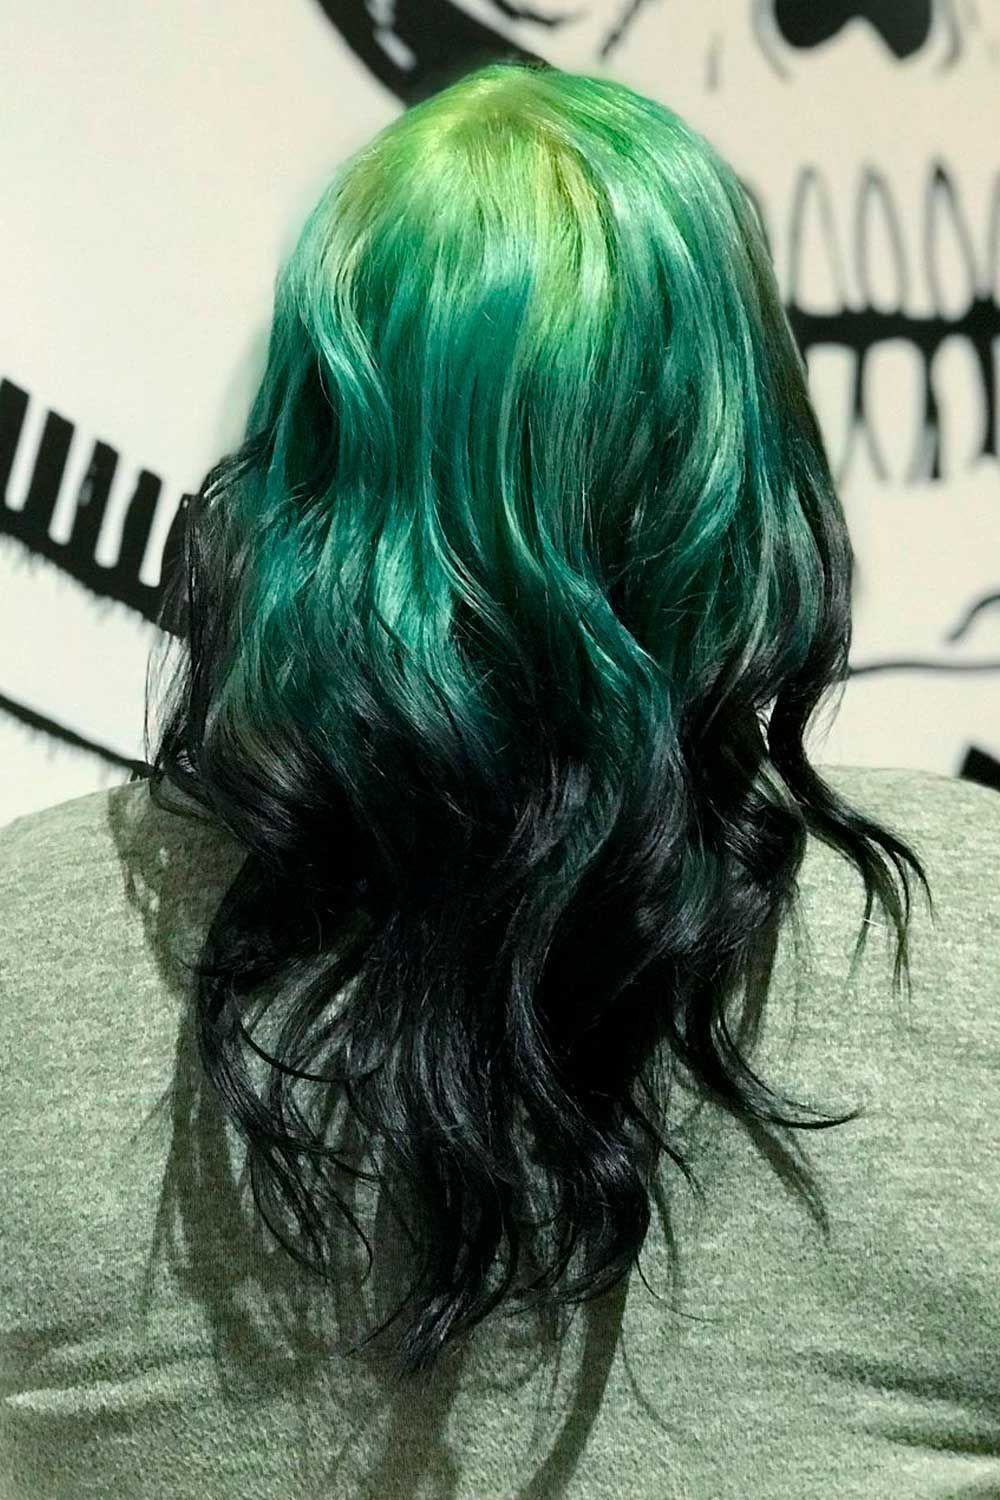 Extra Bright Ideas With Black And Colorful Ombre Reverse Hair, green ombre hair, ombre reverse